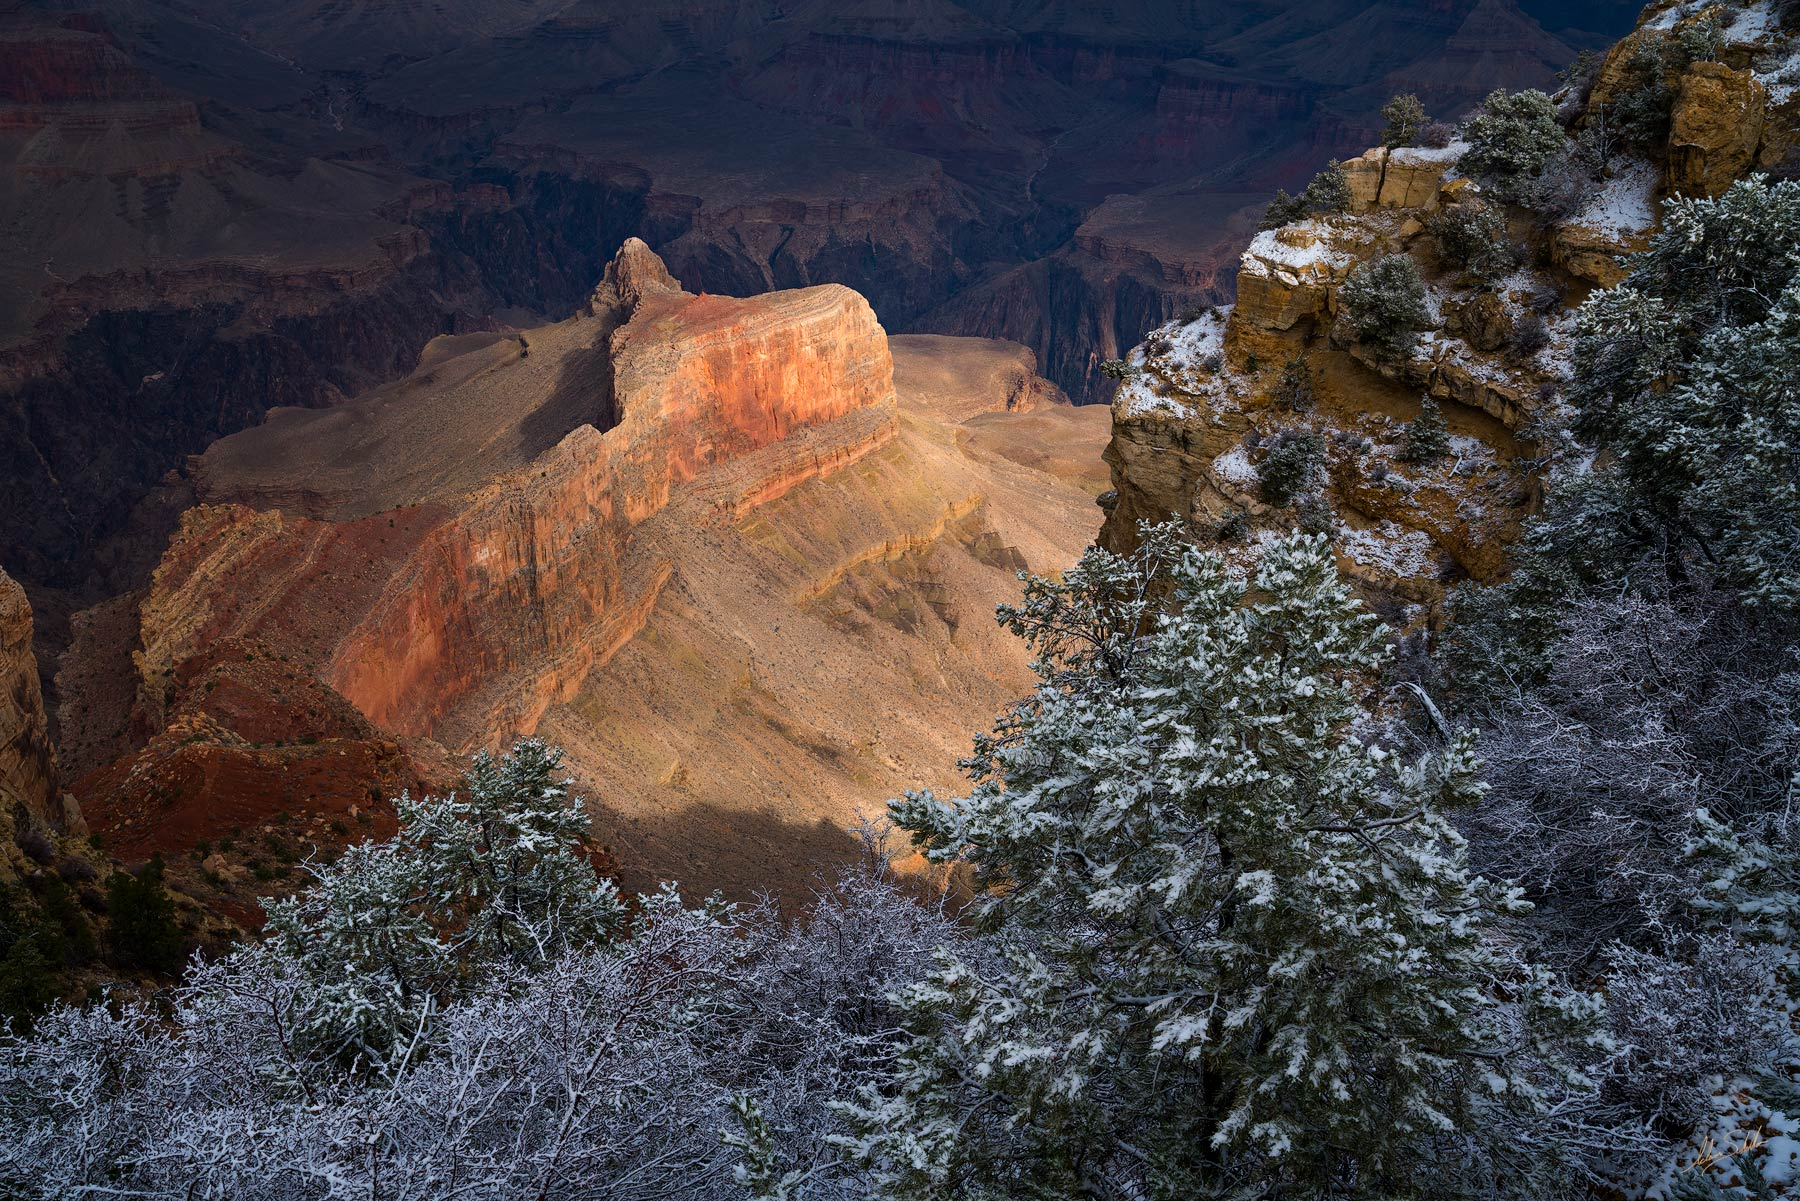 AZ, Arizona, Dana Butte, Grand Canyon, Grand Canyon National Park, National Park, Powell Point, South Rim, South Rim of the Grand Canyon, Winter, Winter at the Grand Canyon, photo